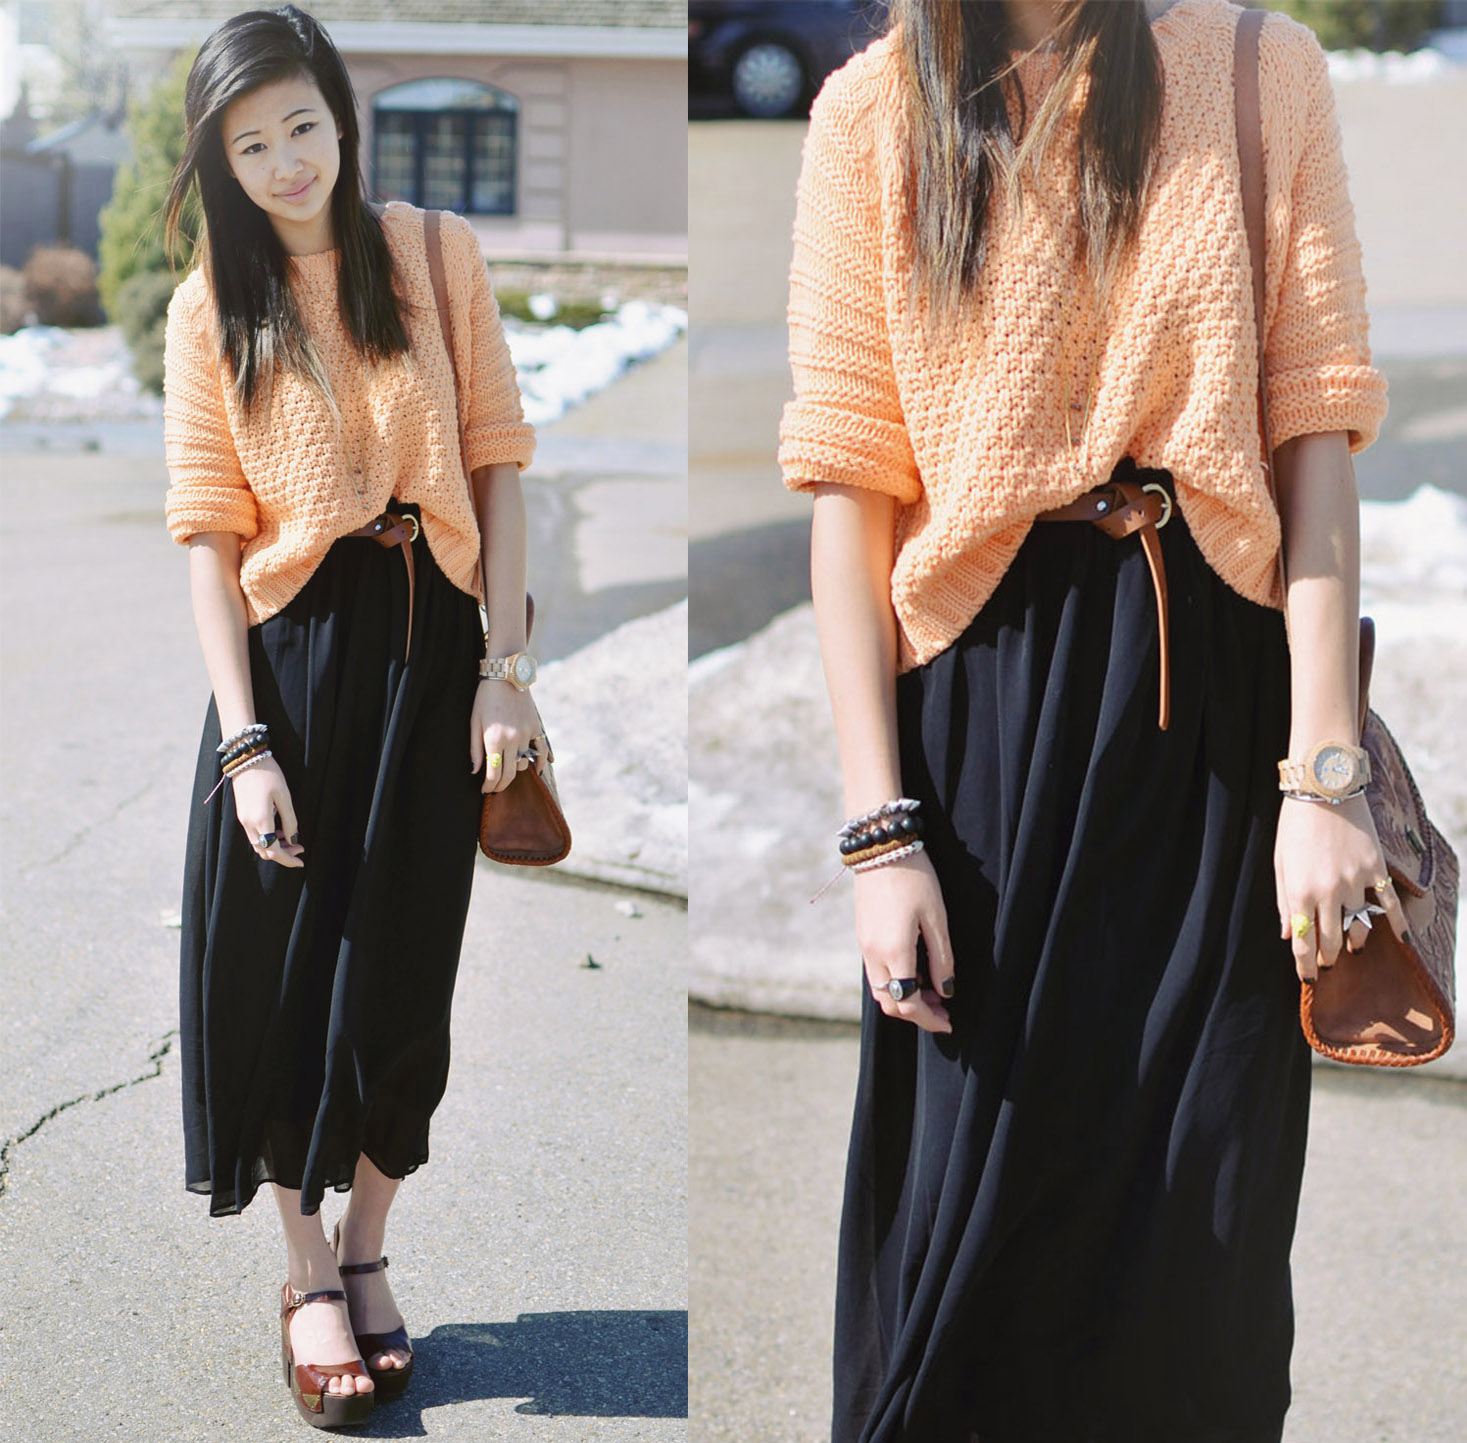 Cute Outfits With Long Skirts Tumblr | Www.pixshark.com - Images Galleries With A Bite!